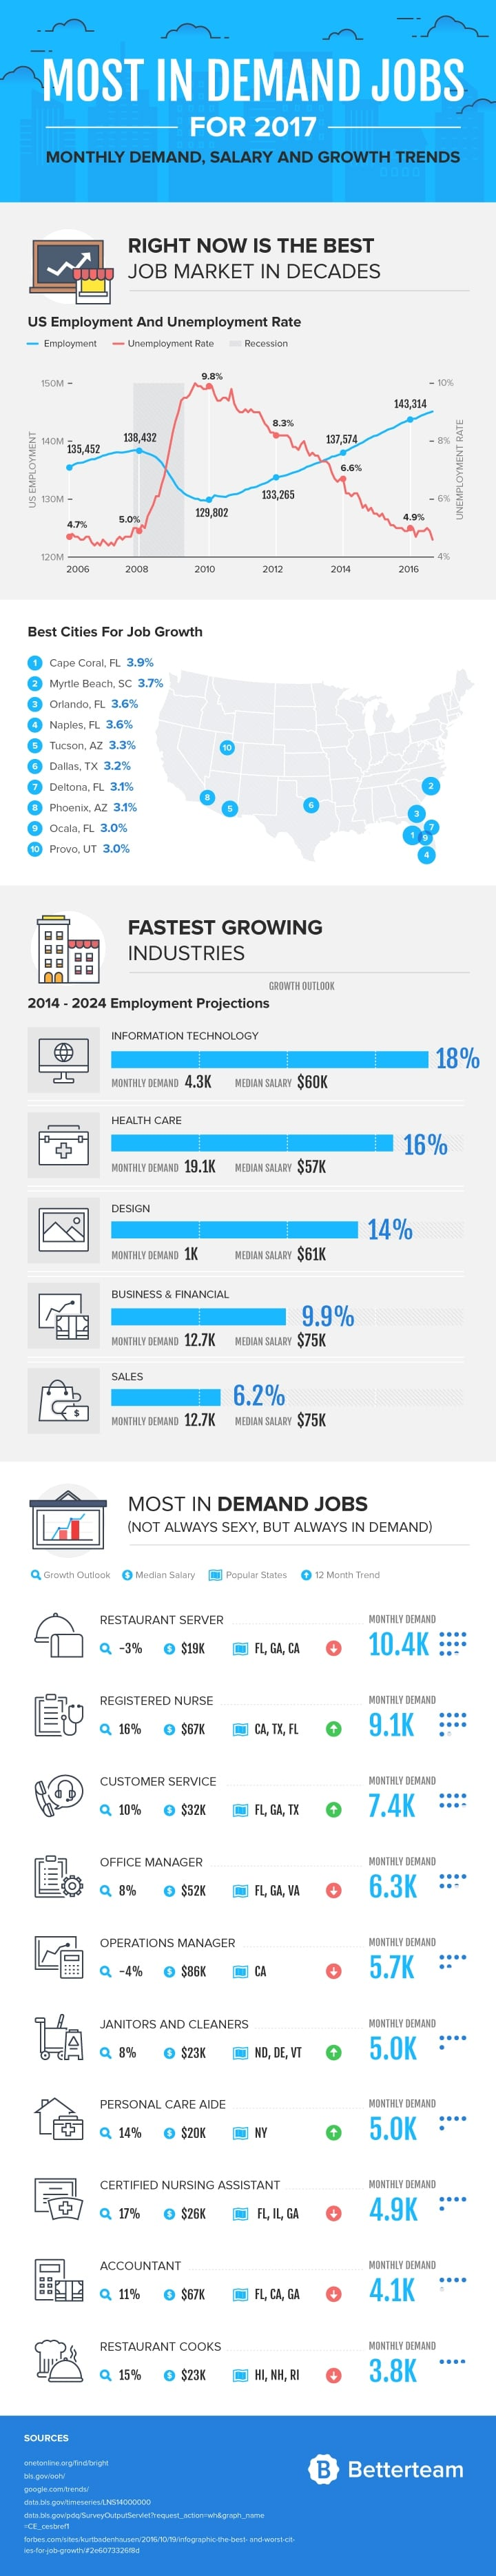 Most In-Demand Jobs 2017 Infographic